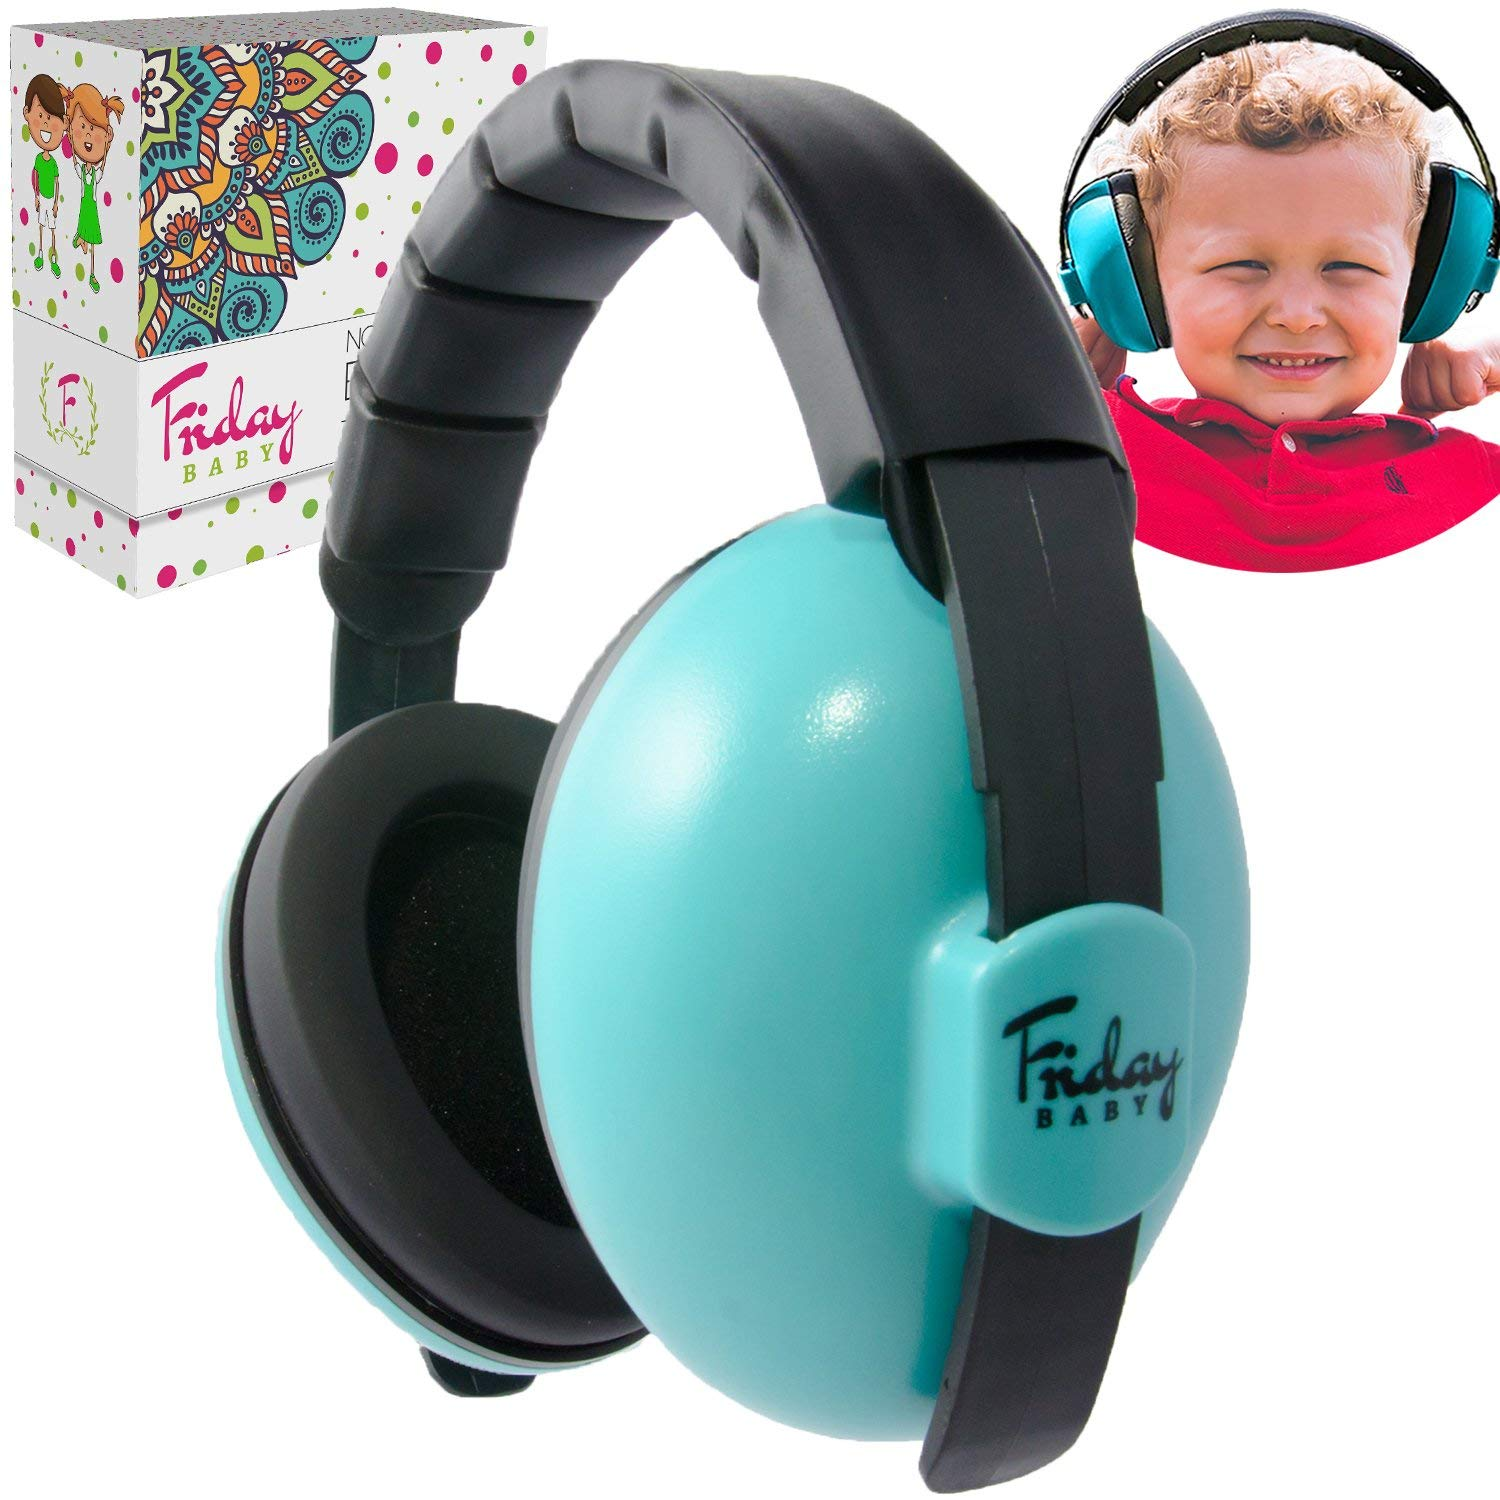 Back To Search Resultssecurity & Protection Little Baby Hearing Protective Ear Muffs Comfortable Noise Reduction Ear Buff For Protecting Your Infant Toddler Over 3 Months Ear Protector